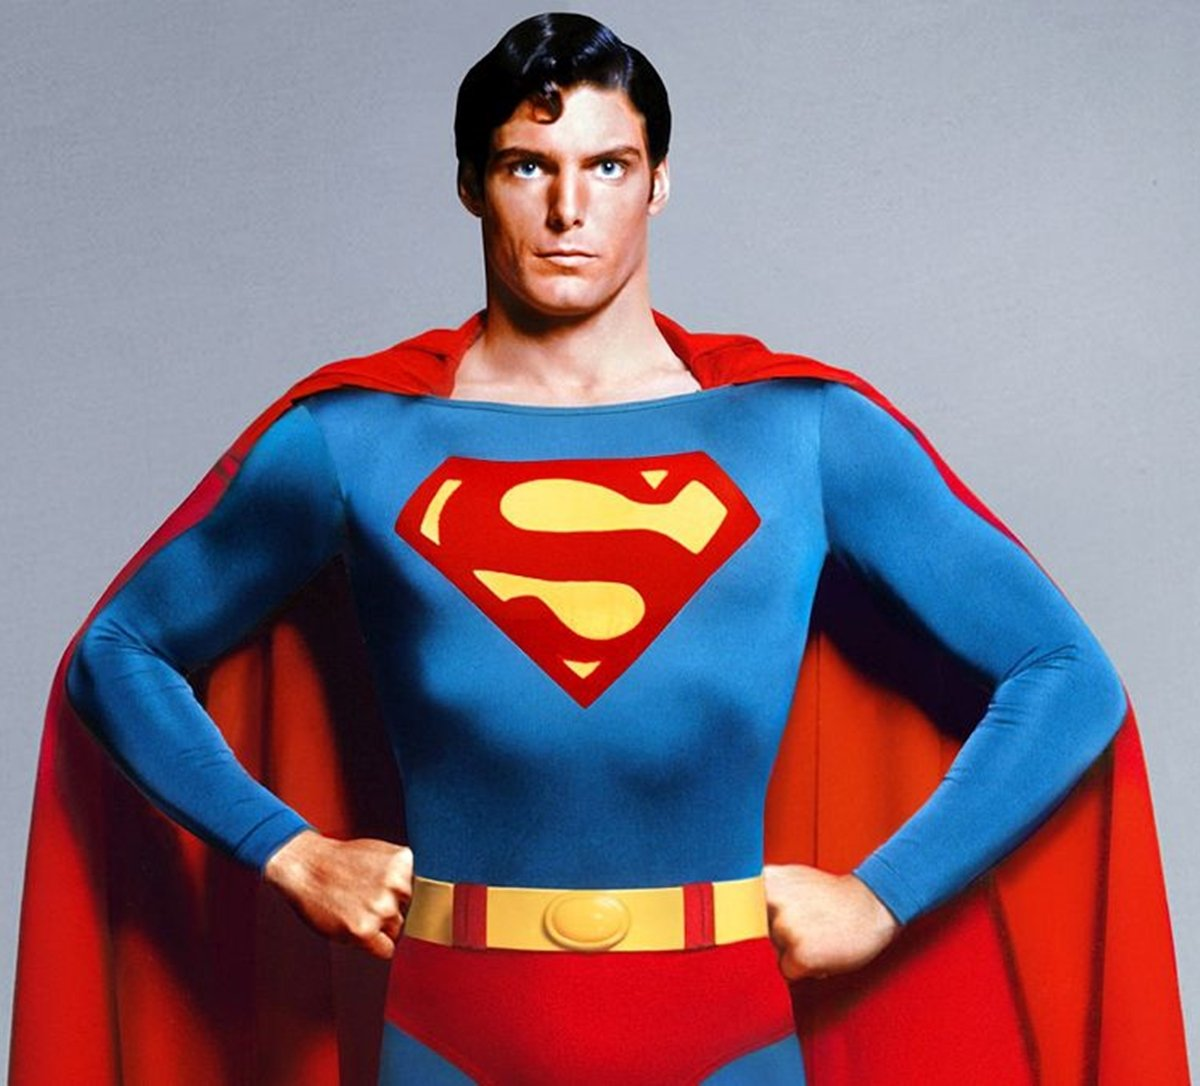 1 18 12 Things You May Have Missed In Christopher Reeve's Superman Films